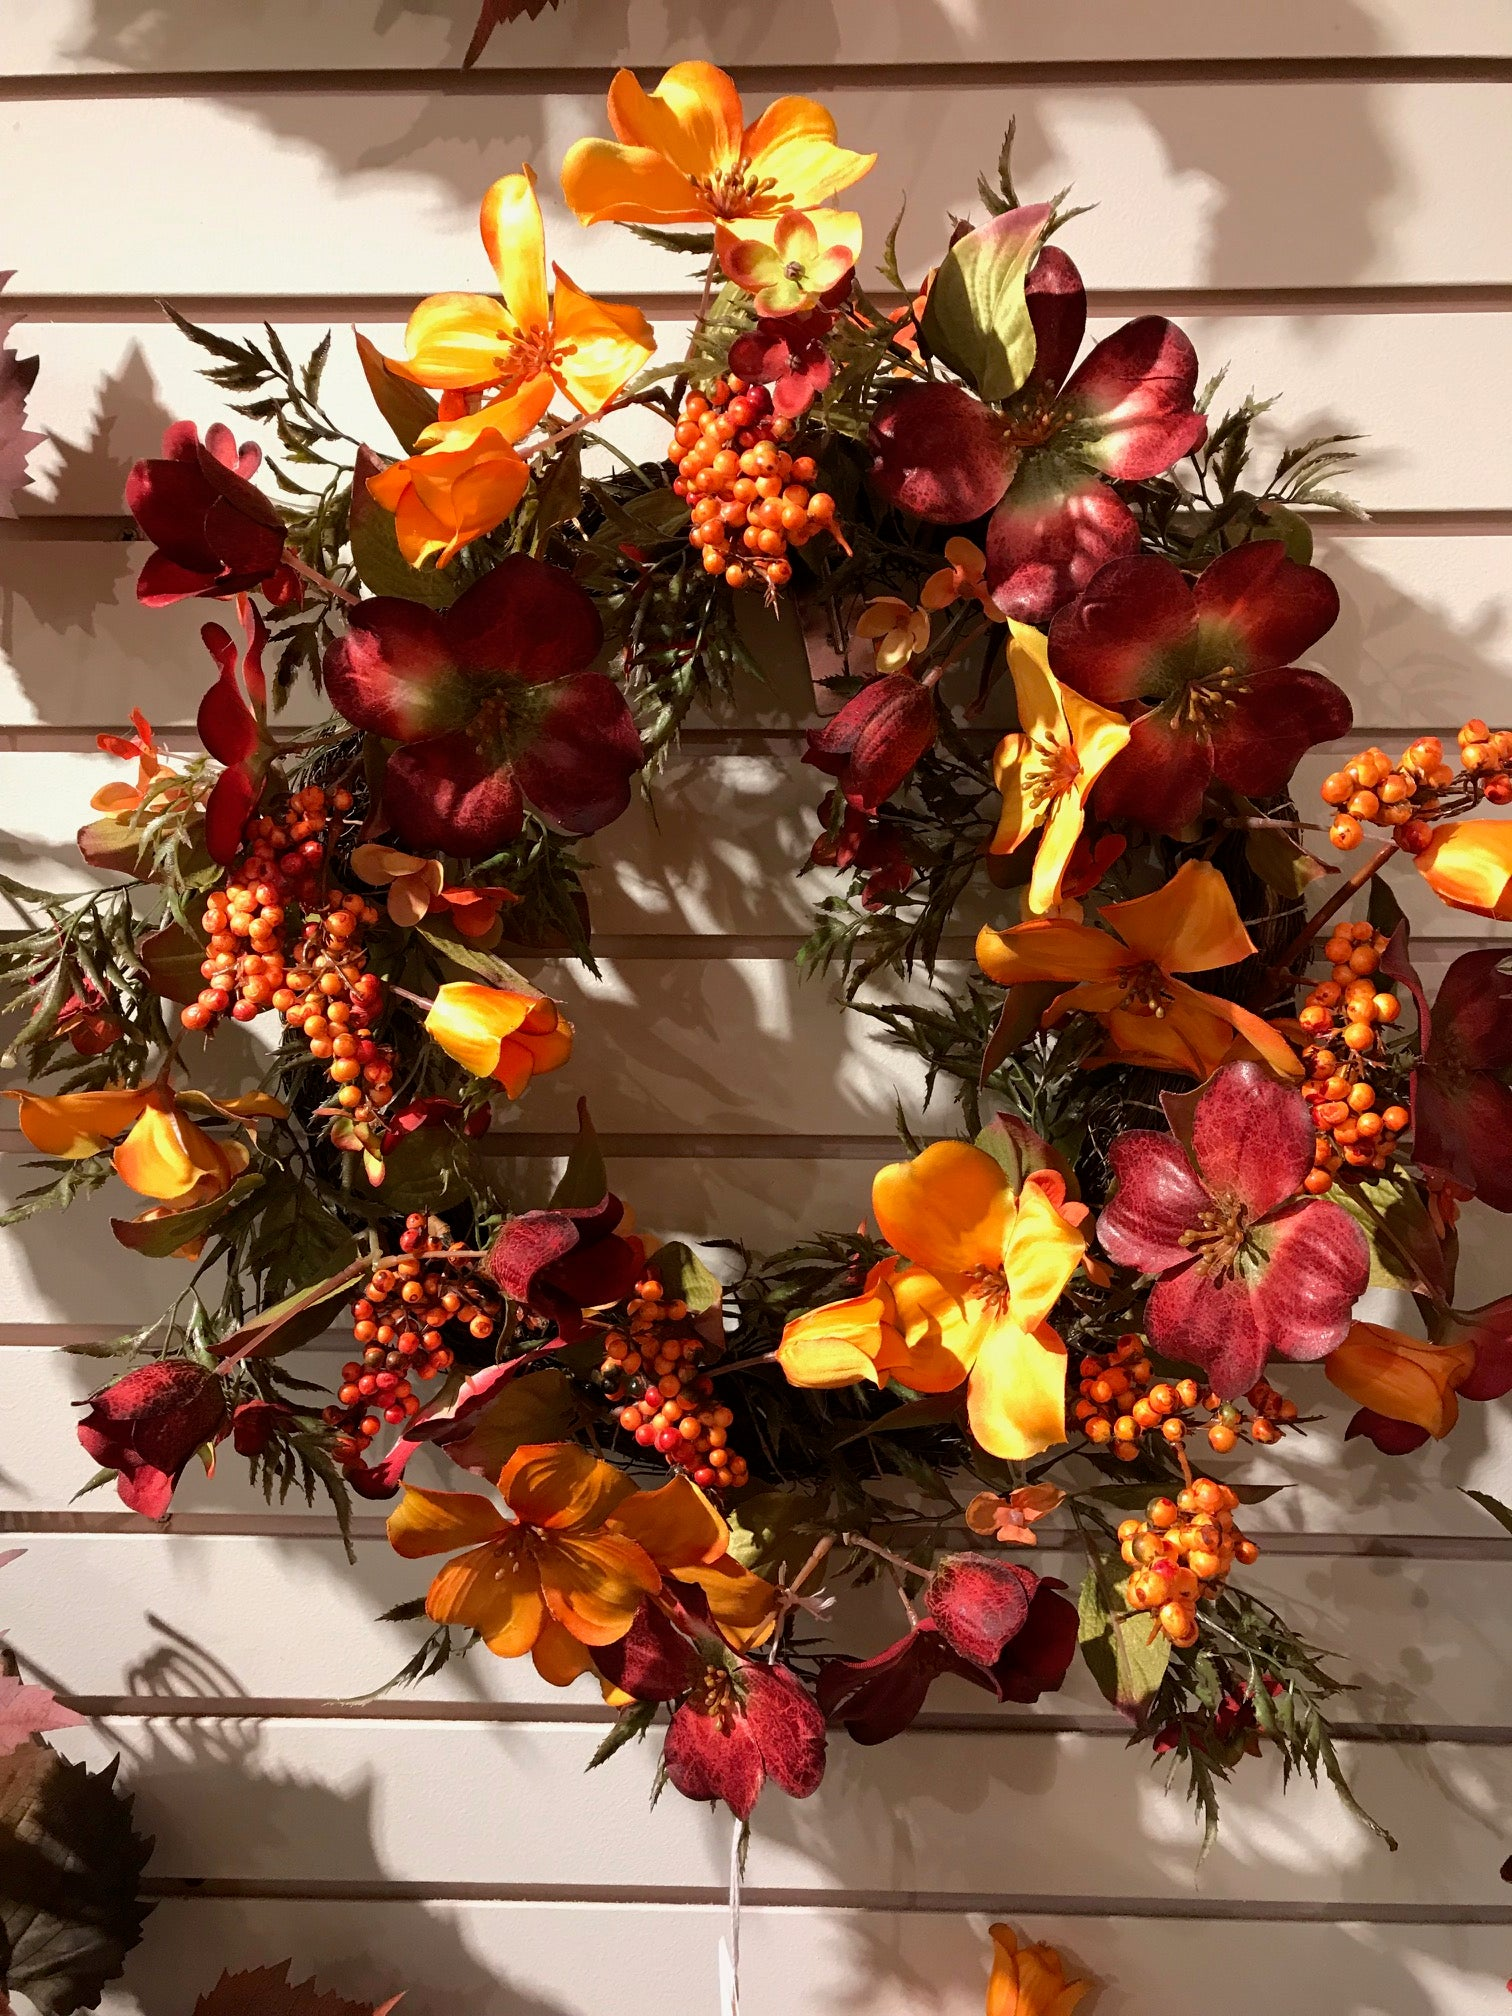 VHYX80372 FALL DOGWOOD BERRY WREATH